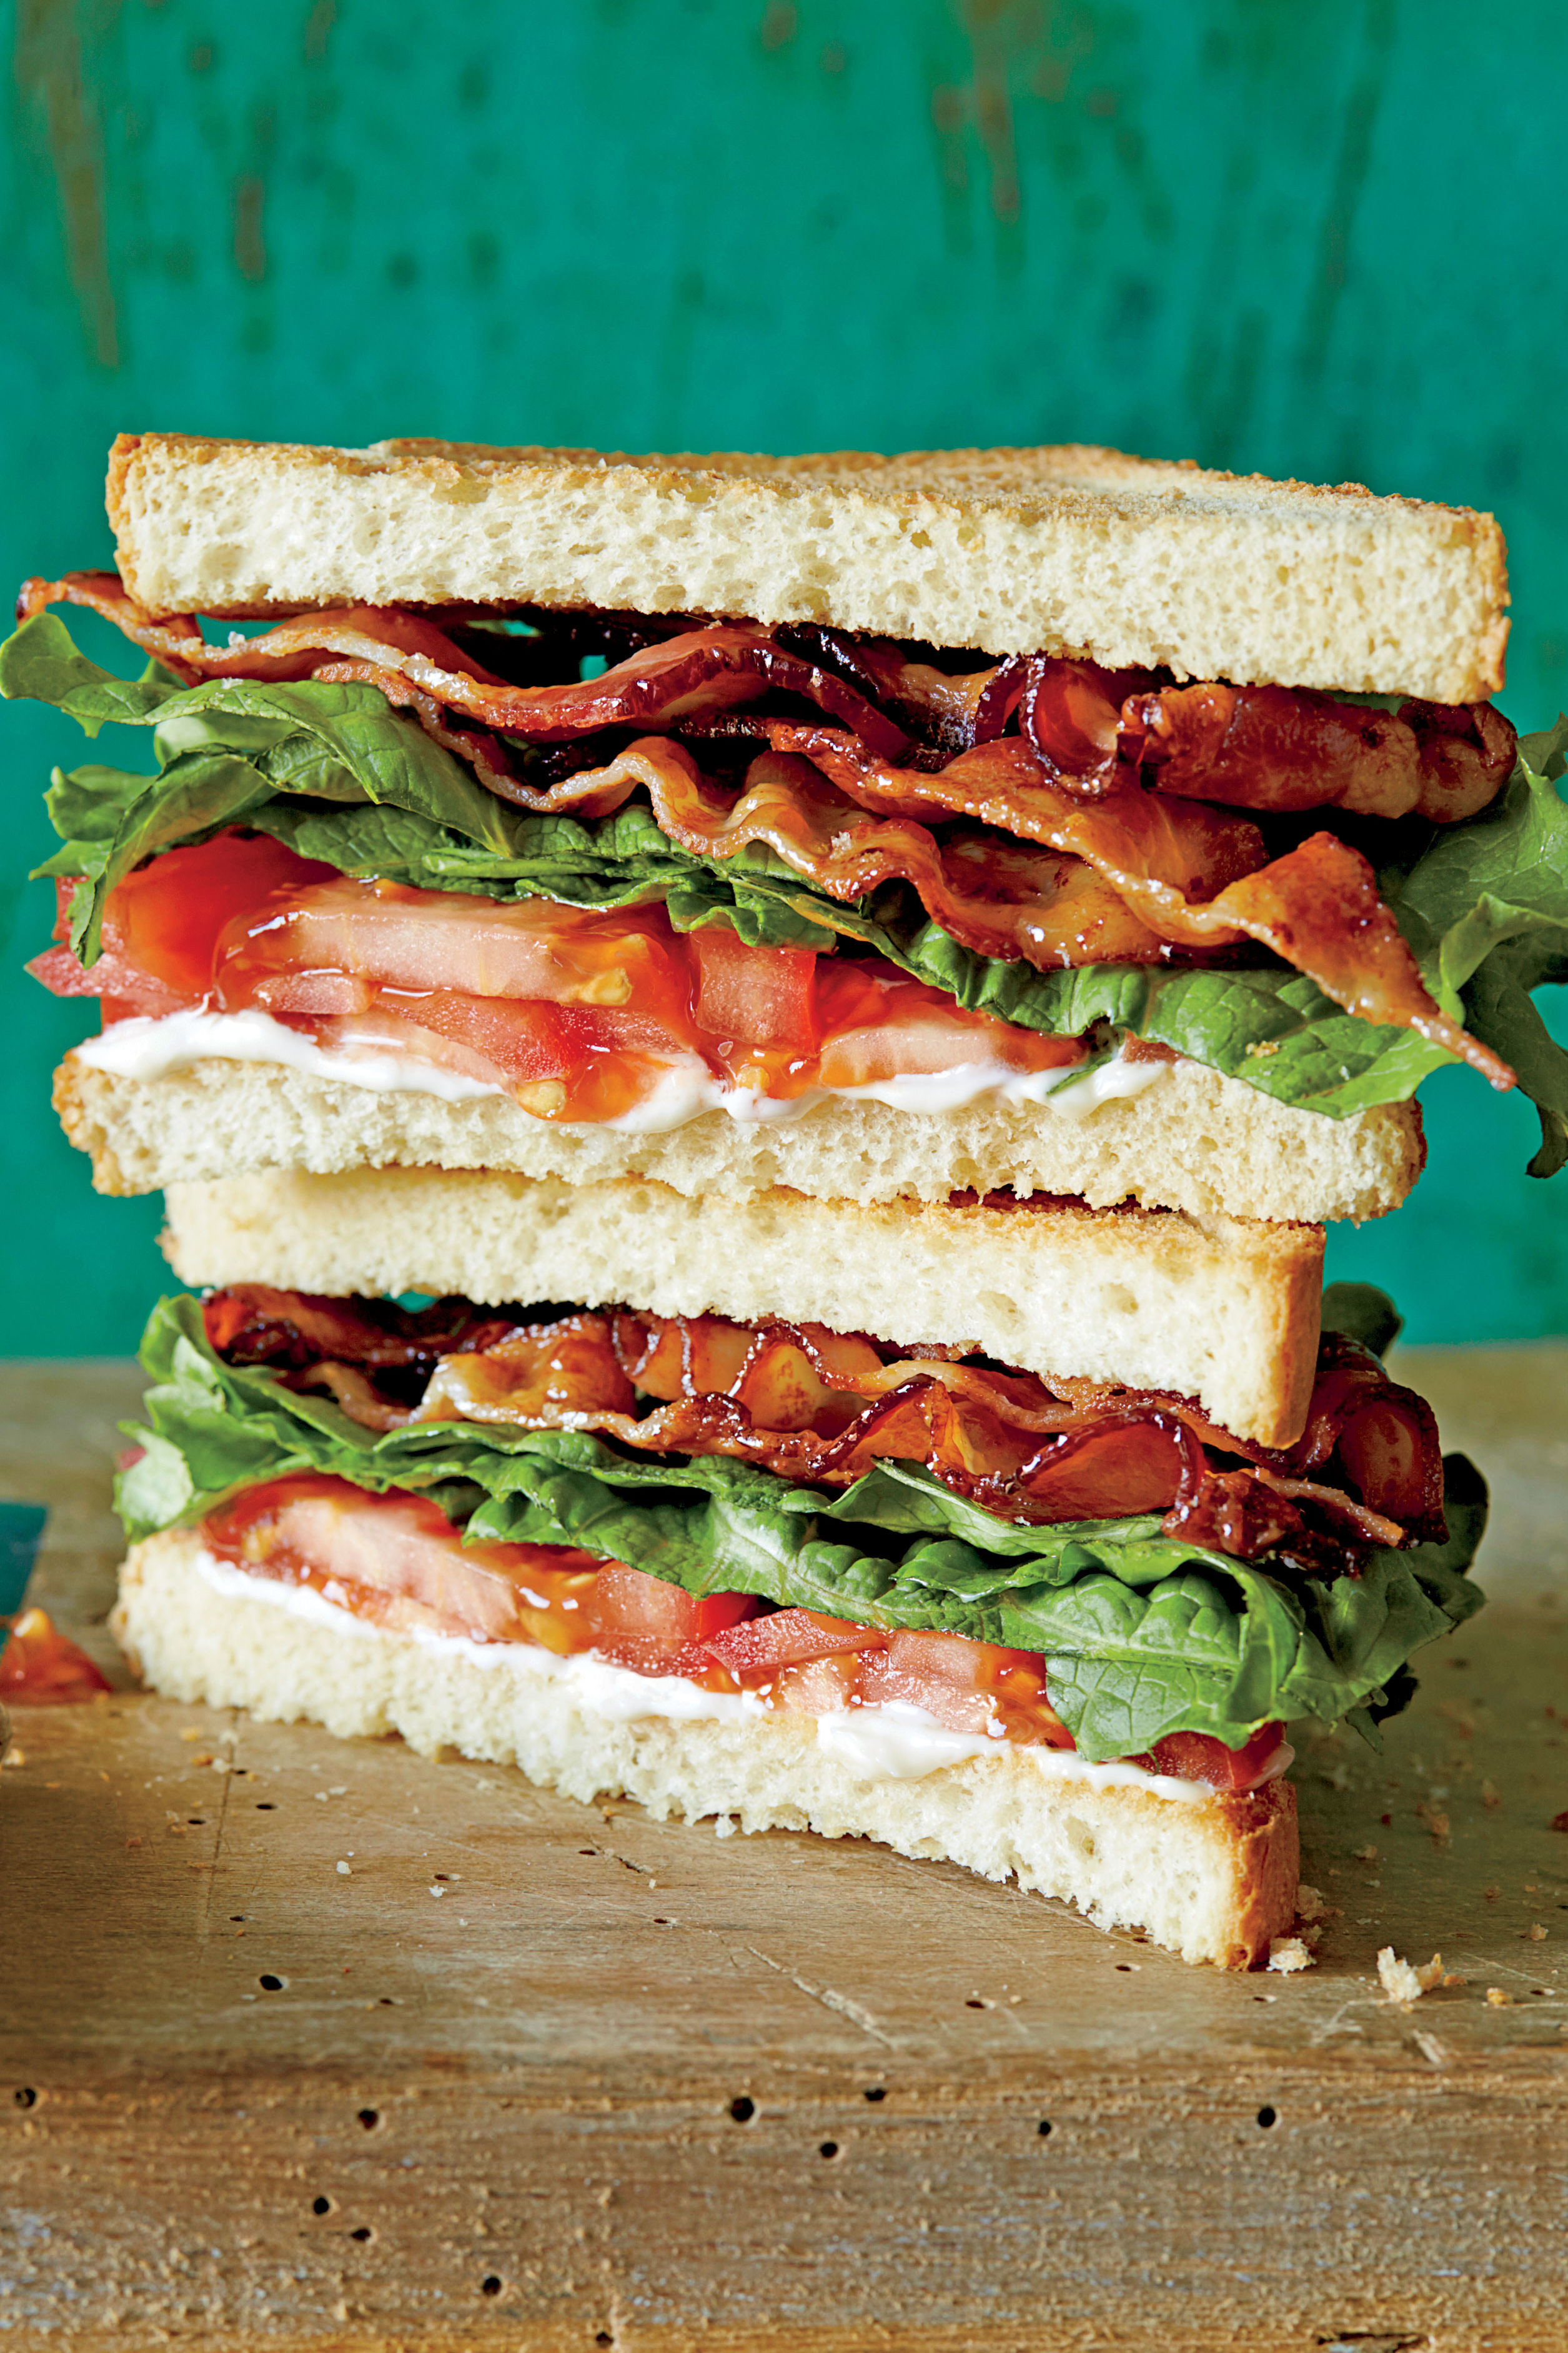 WATCH: Get The Most Out Of Your BLT With This Easy Bacon Hack